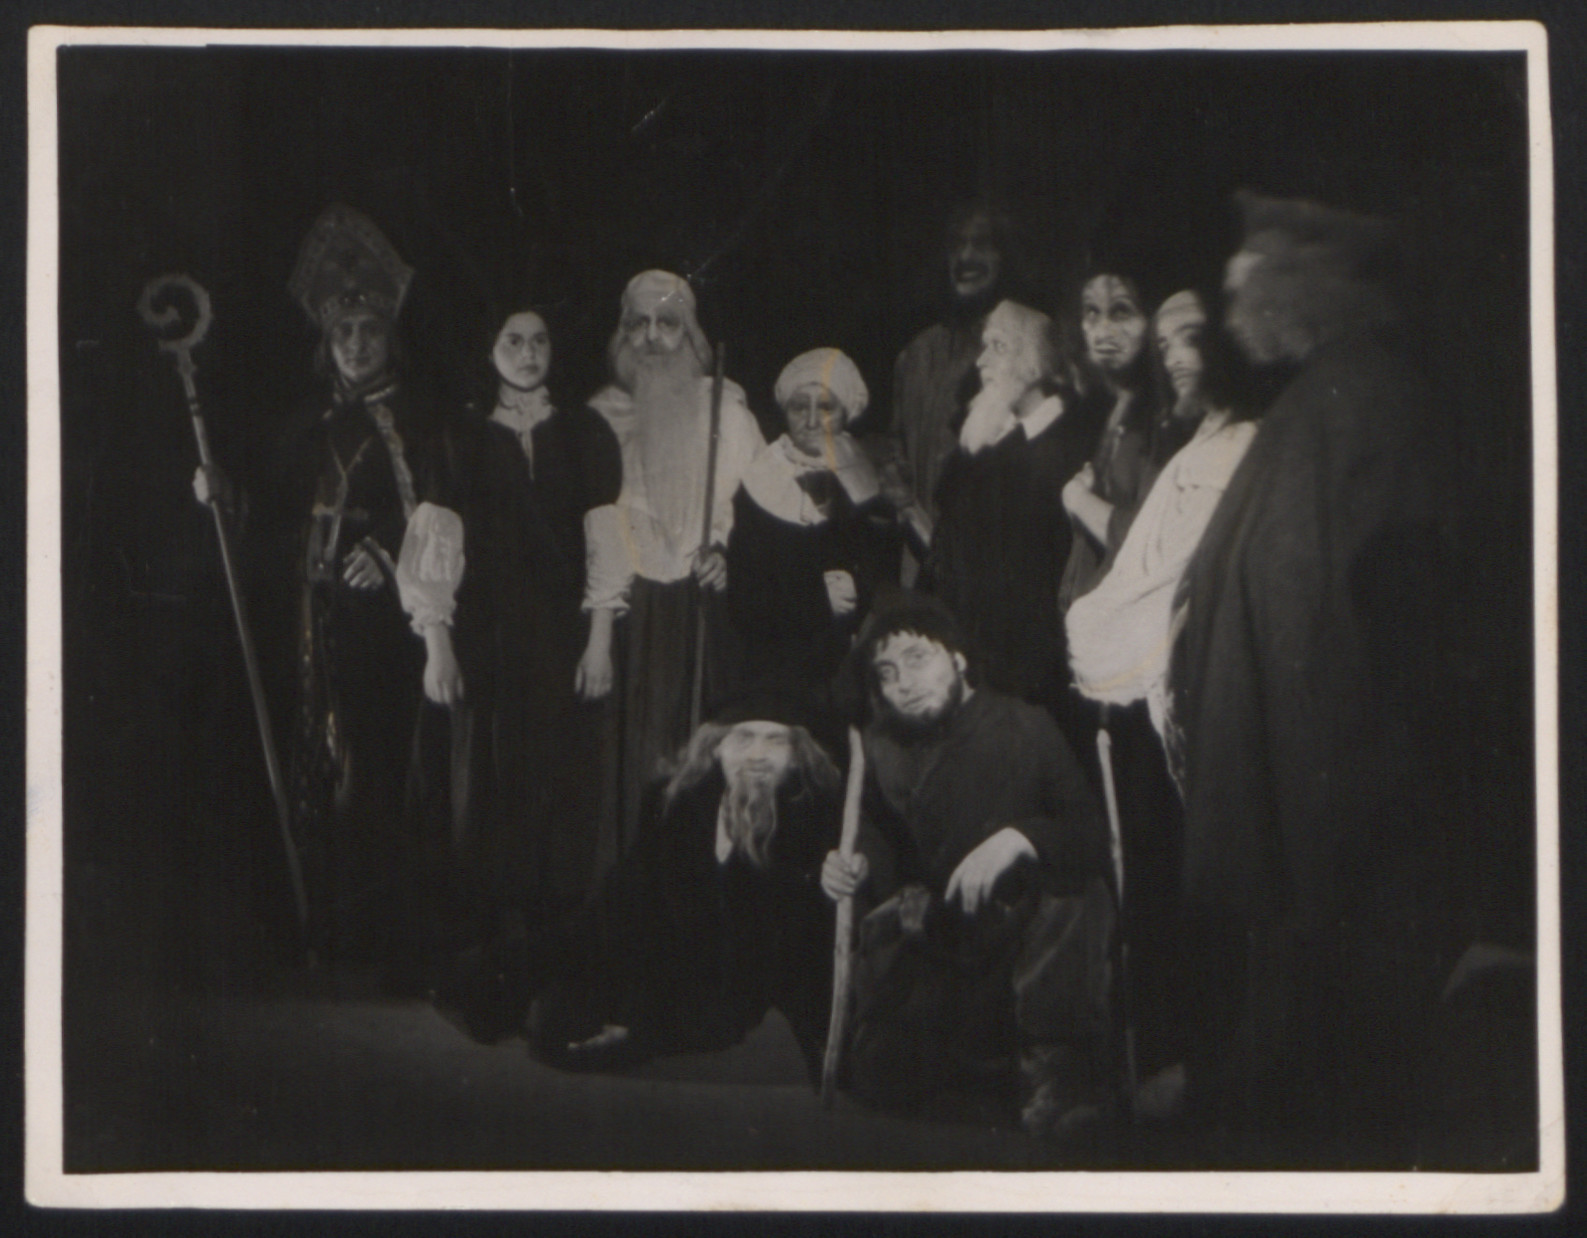 Members of Hazamir Chorale perform in the play, The Golem, in the Landsberg displaced persons camp.